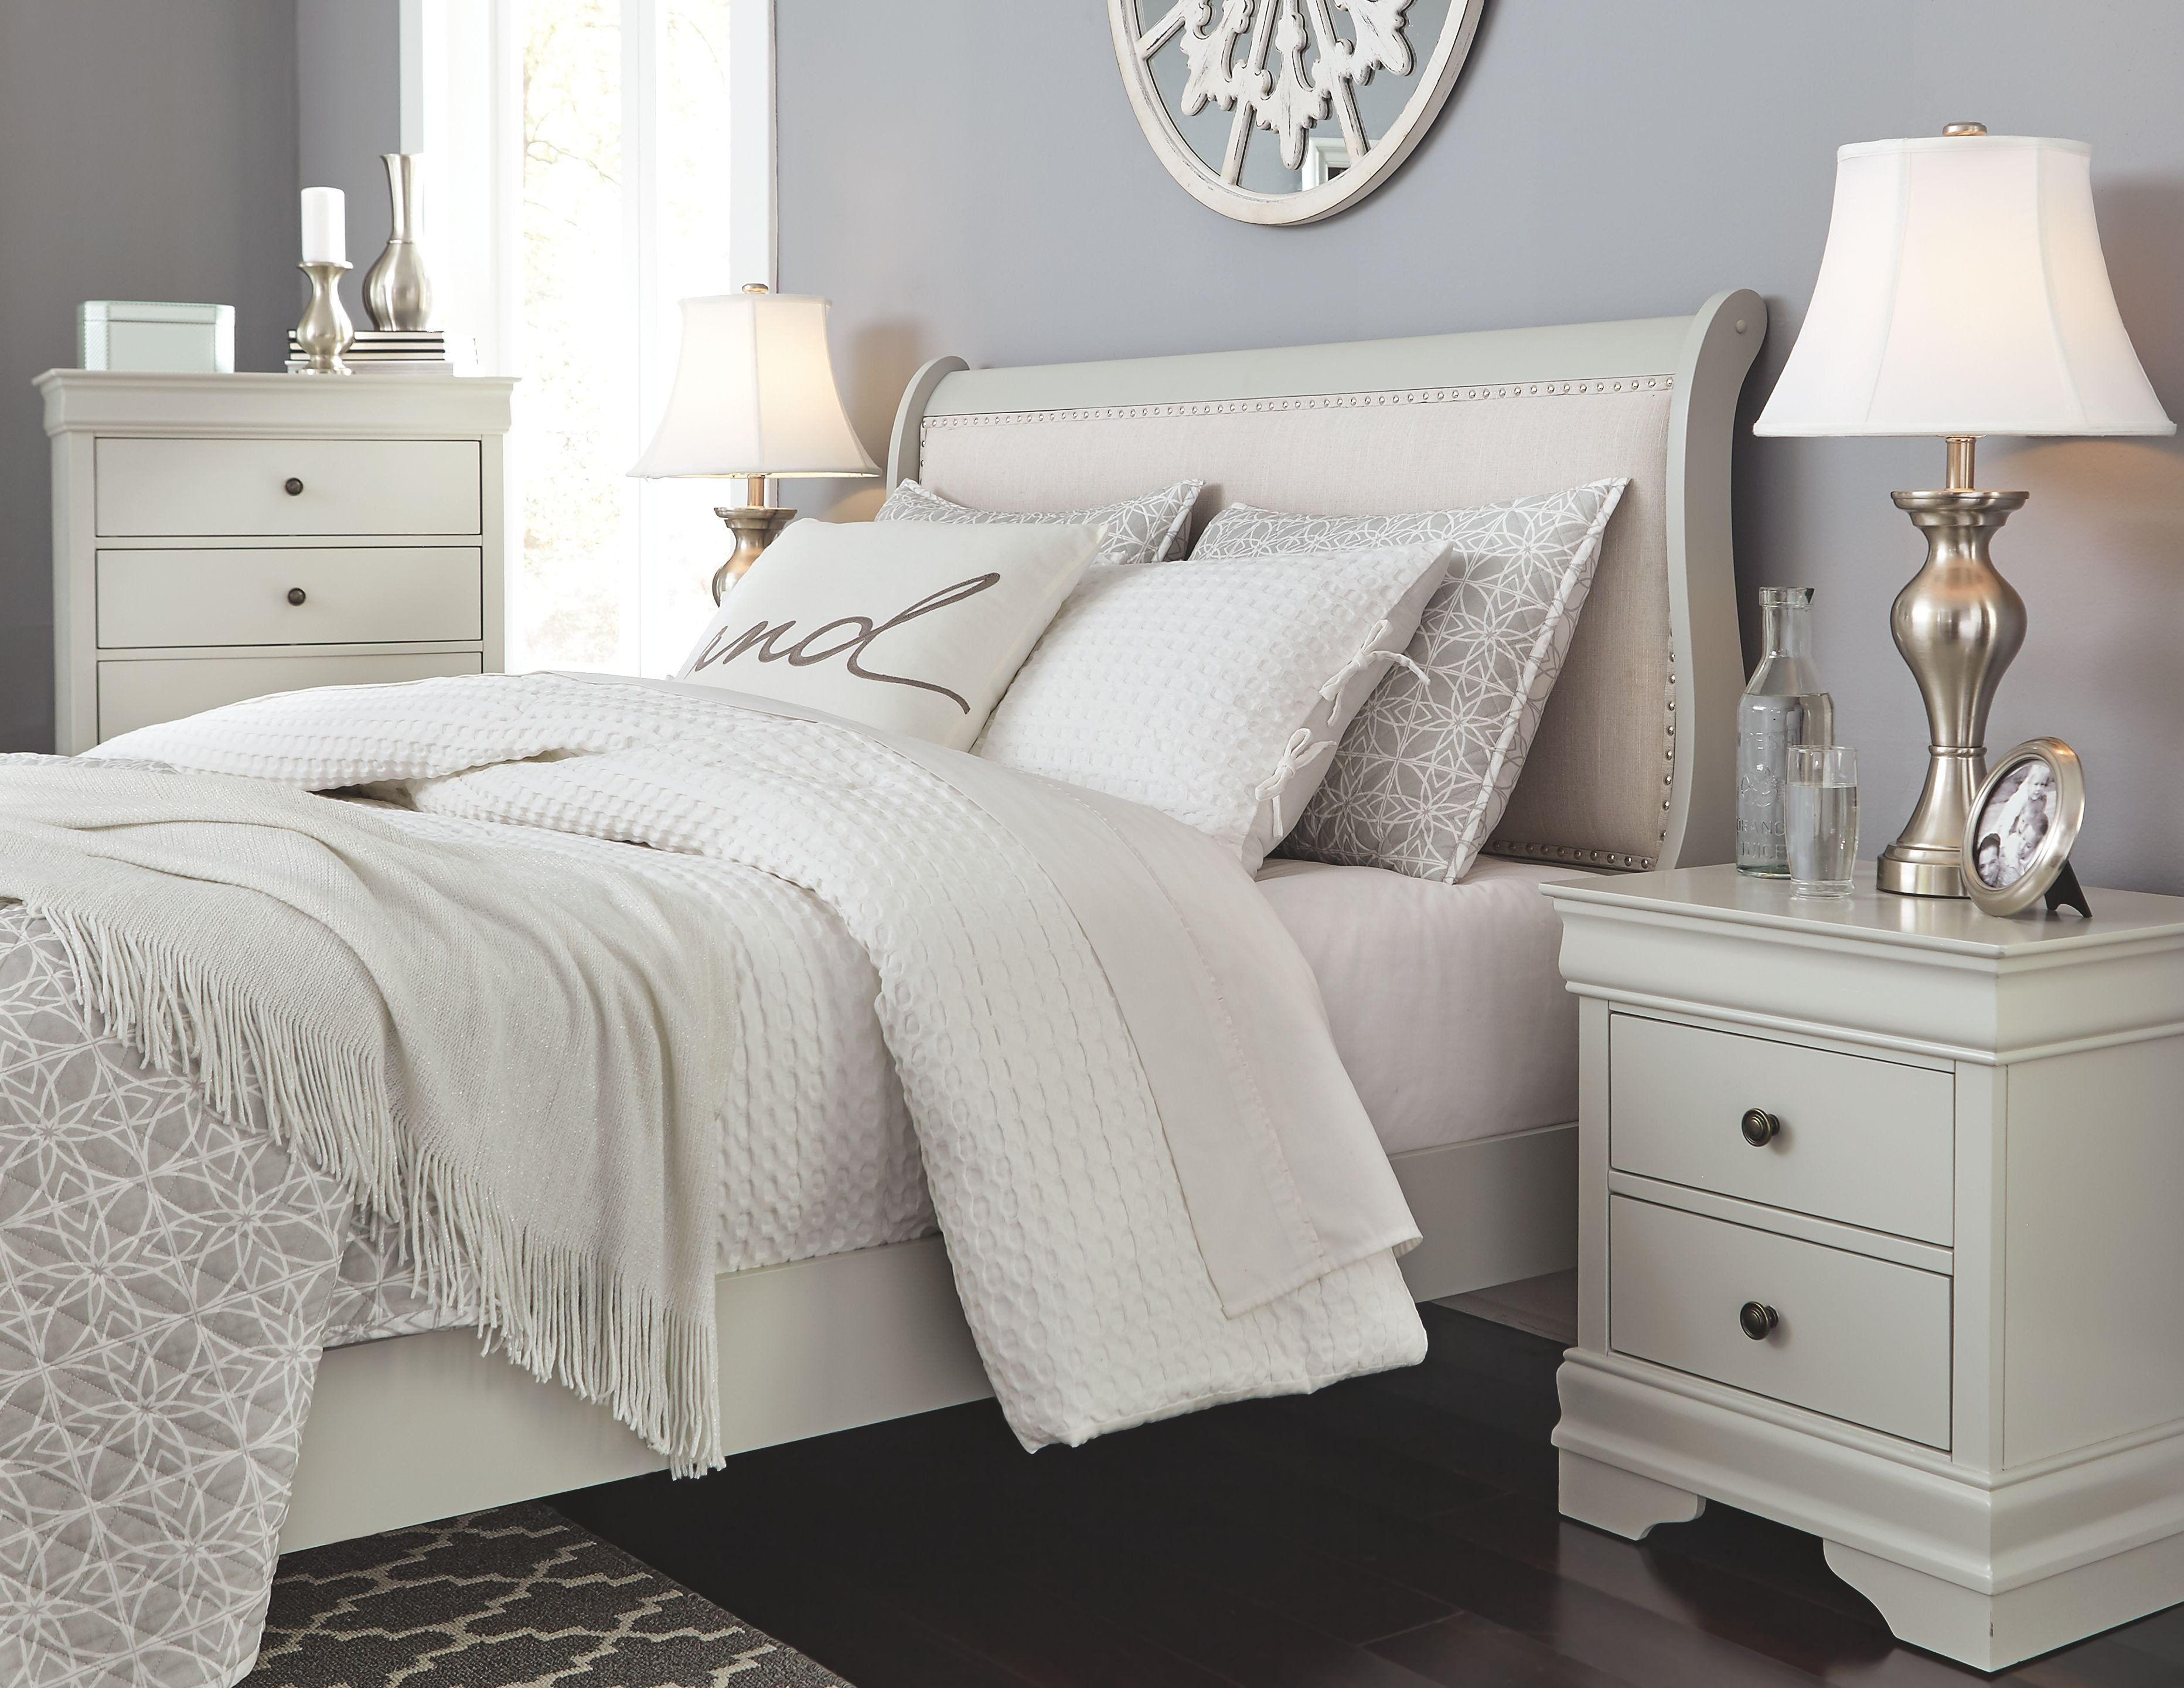 Ashley Furniture Silver Bedroom Set Unique Jorstad Full Bed with 2 Nightstands Gray